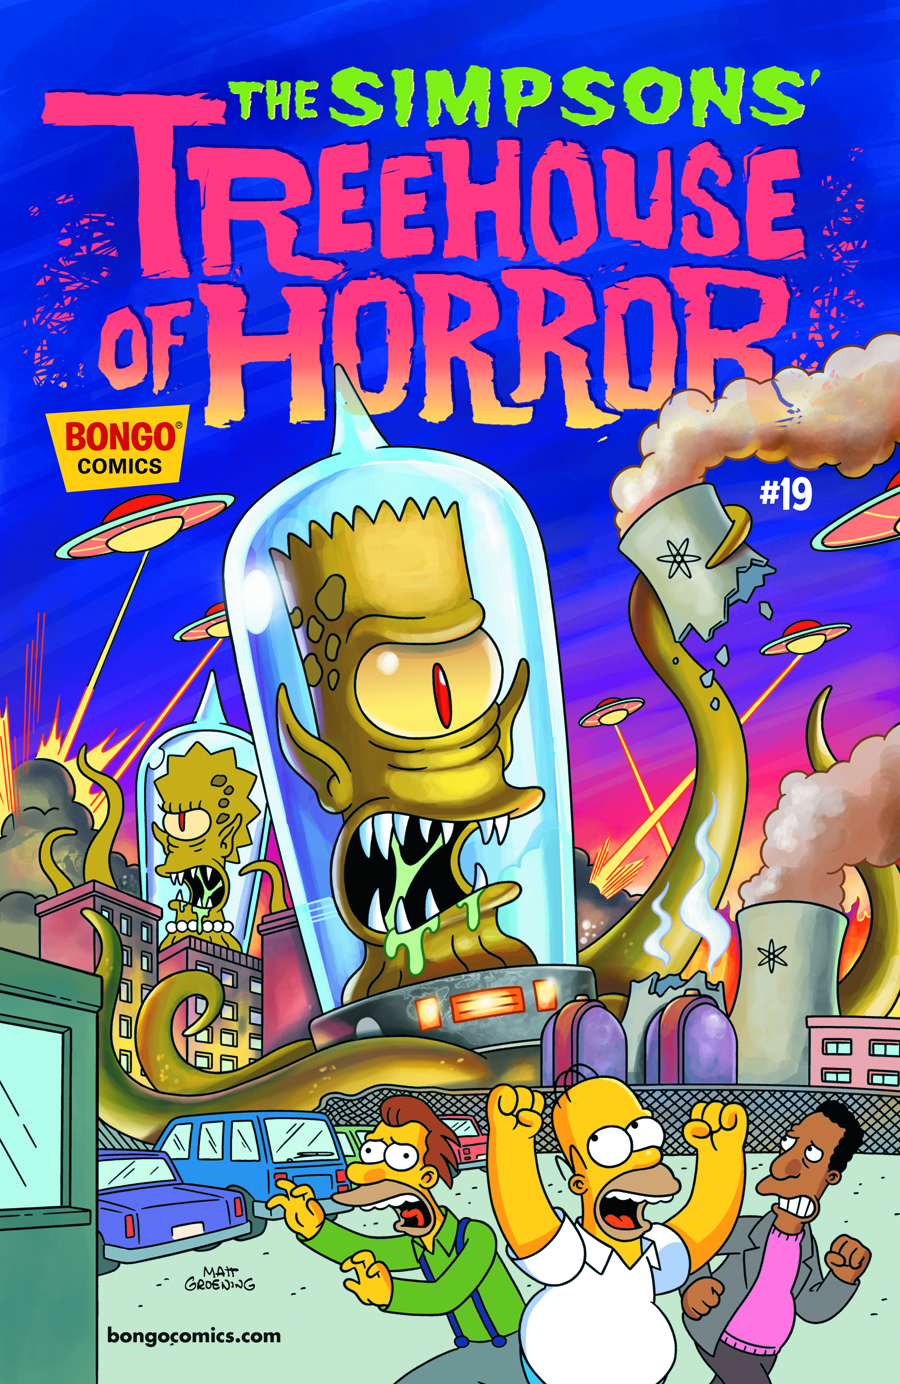 SIMPSONS TREEHOUSE OF HORROR #19